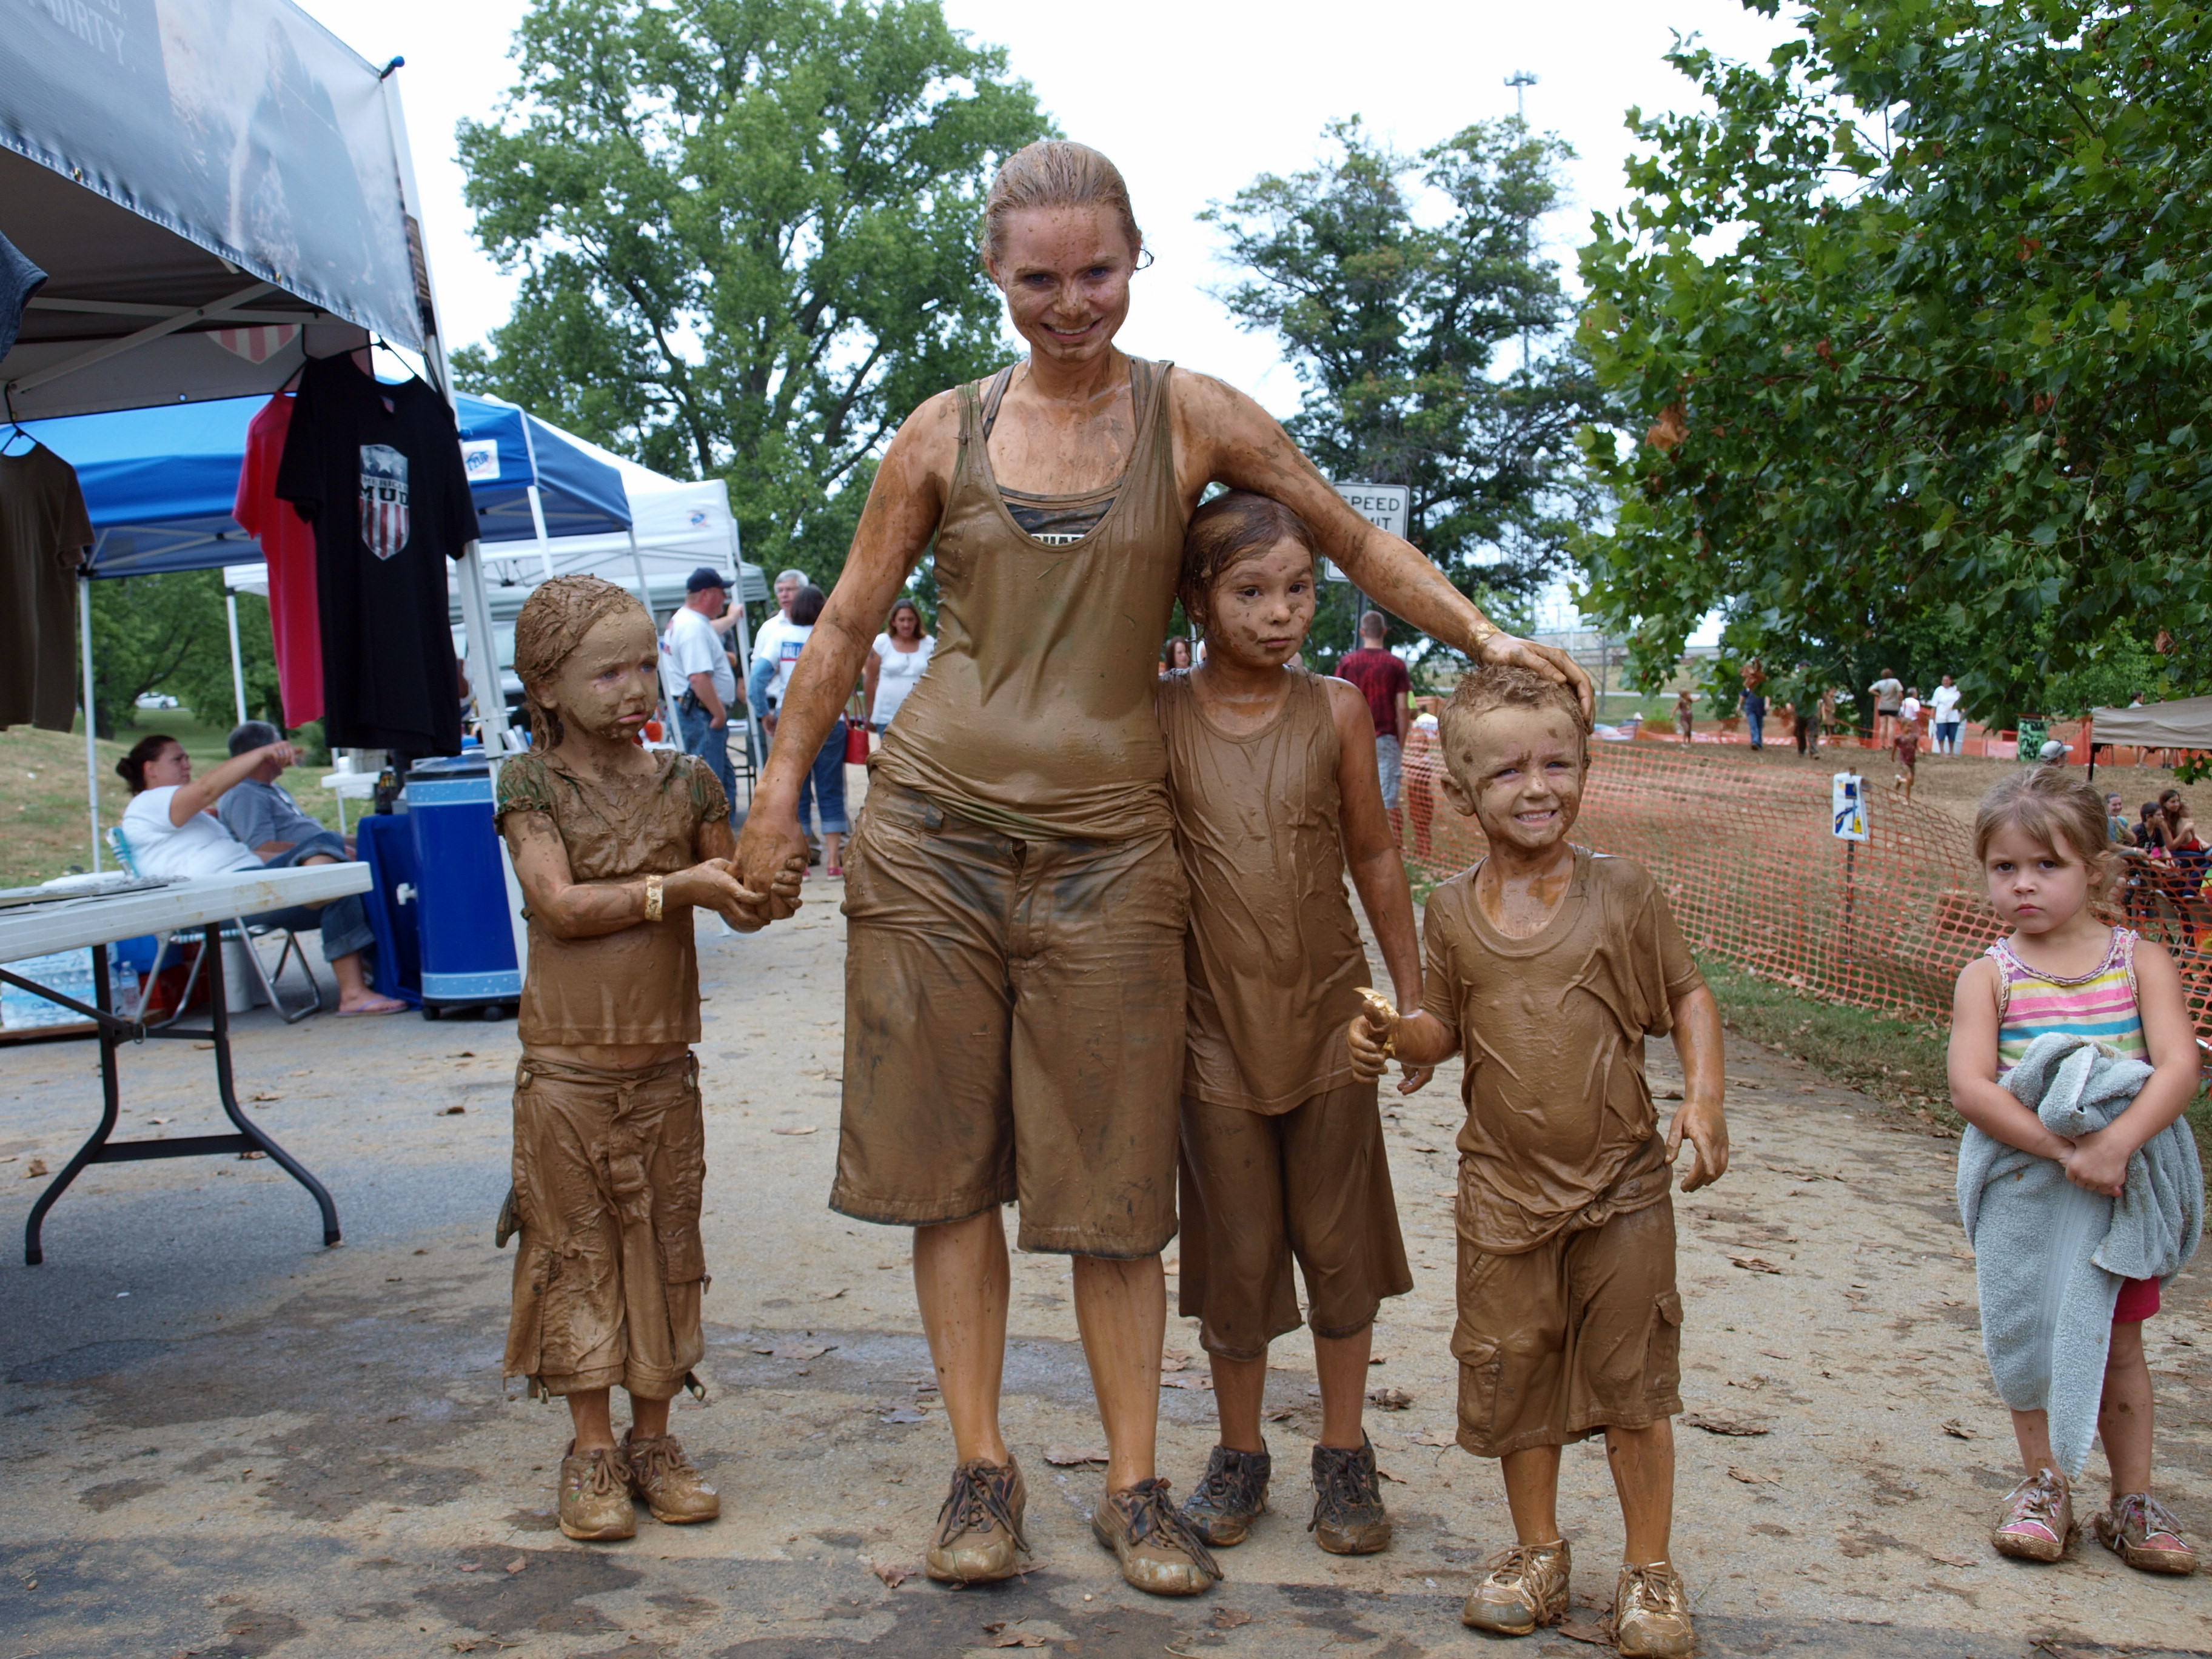 Family covered in mud